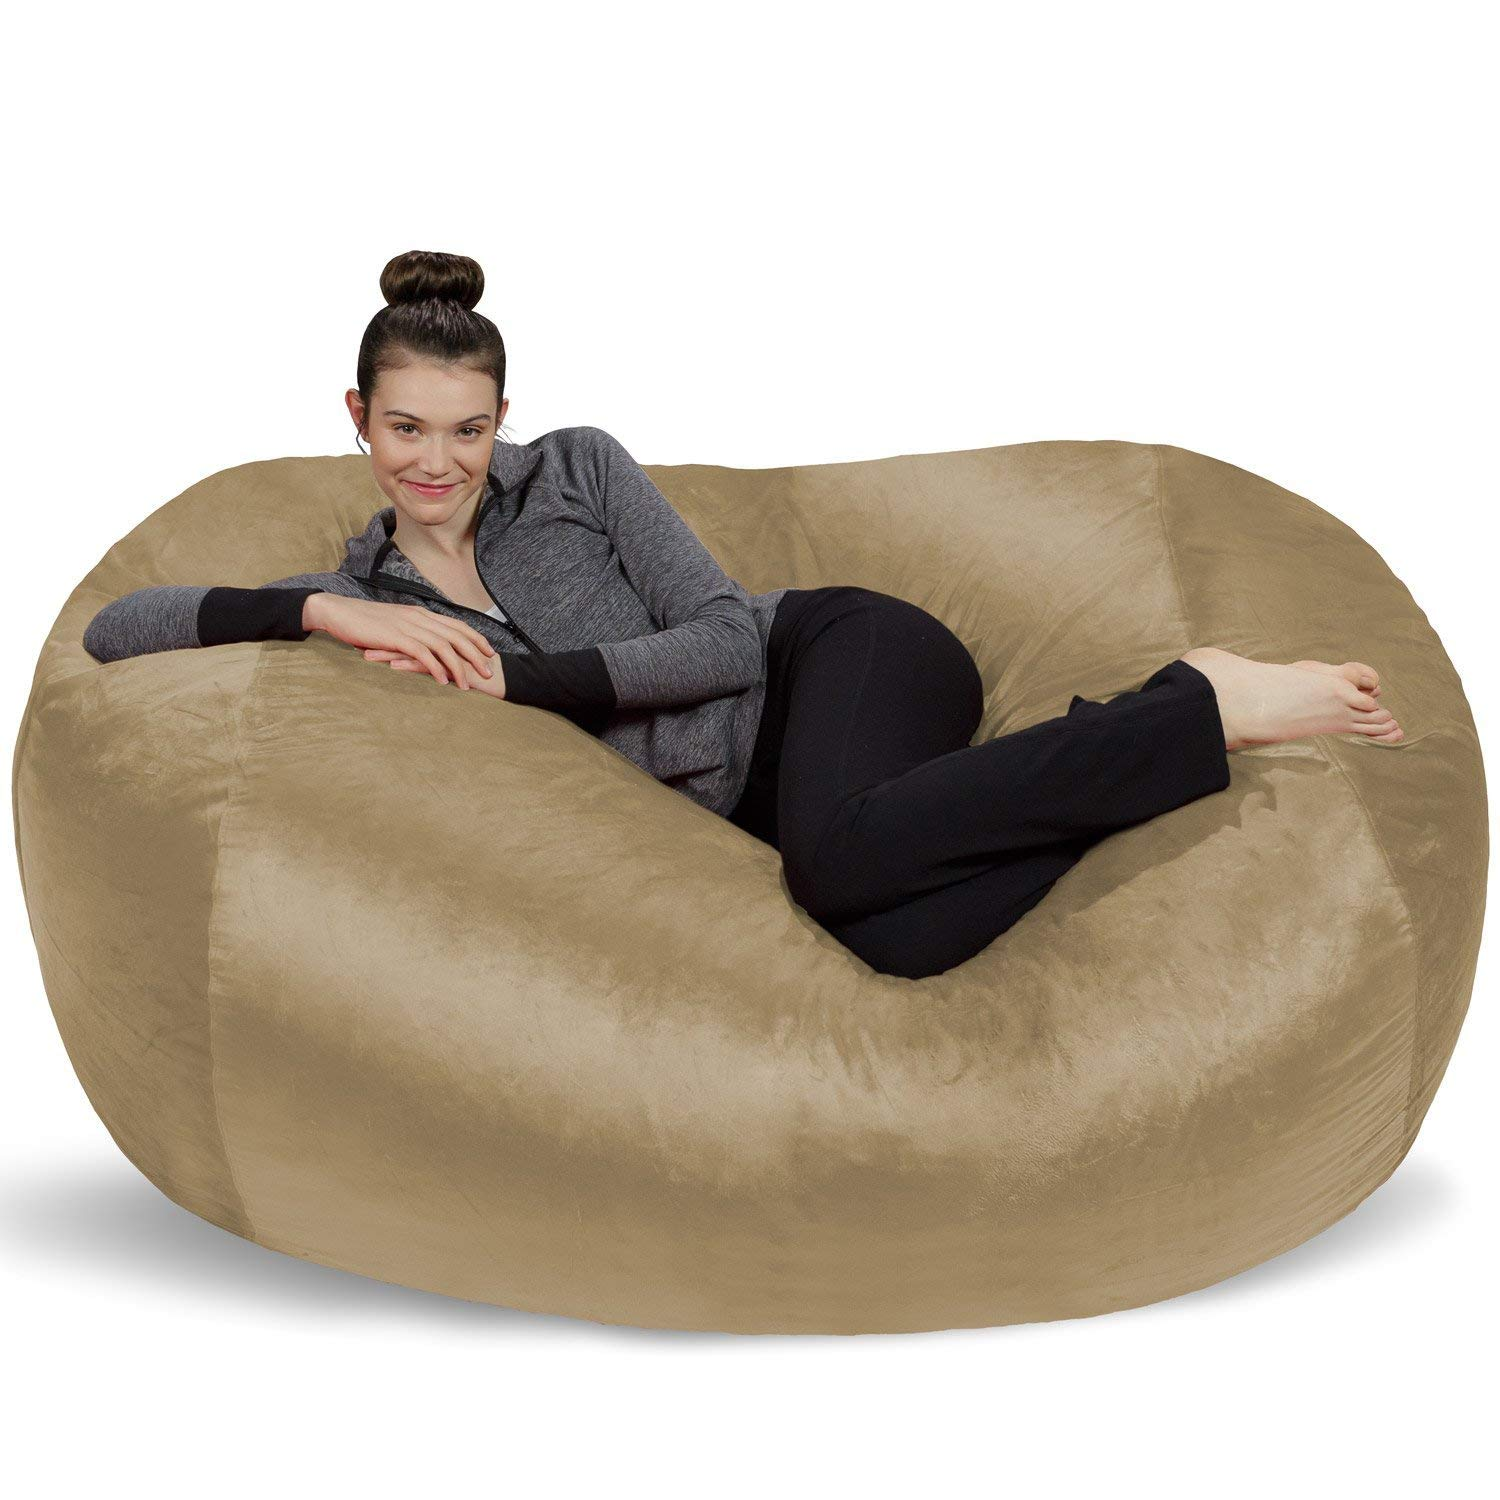 Sofa Sack 6 Foot Large Bean Bag